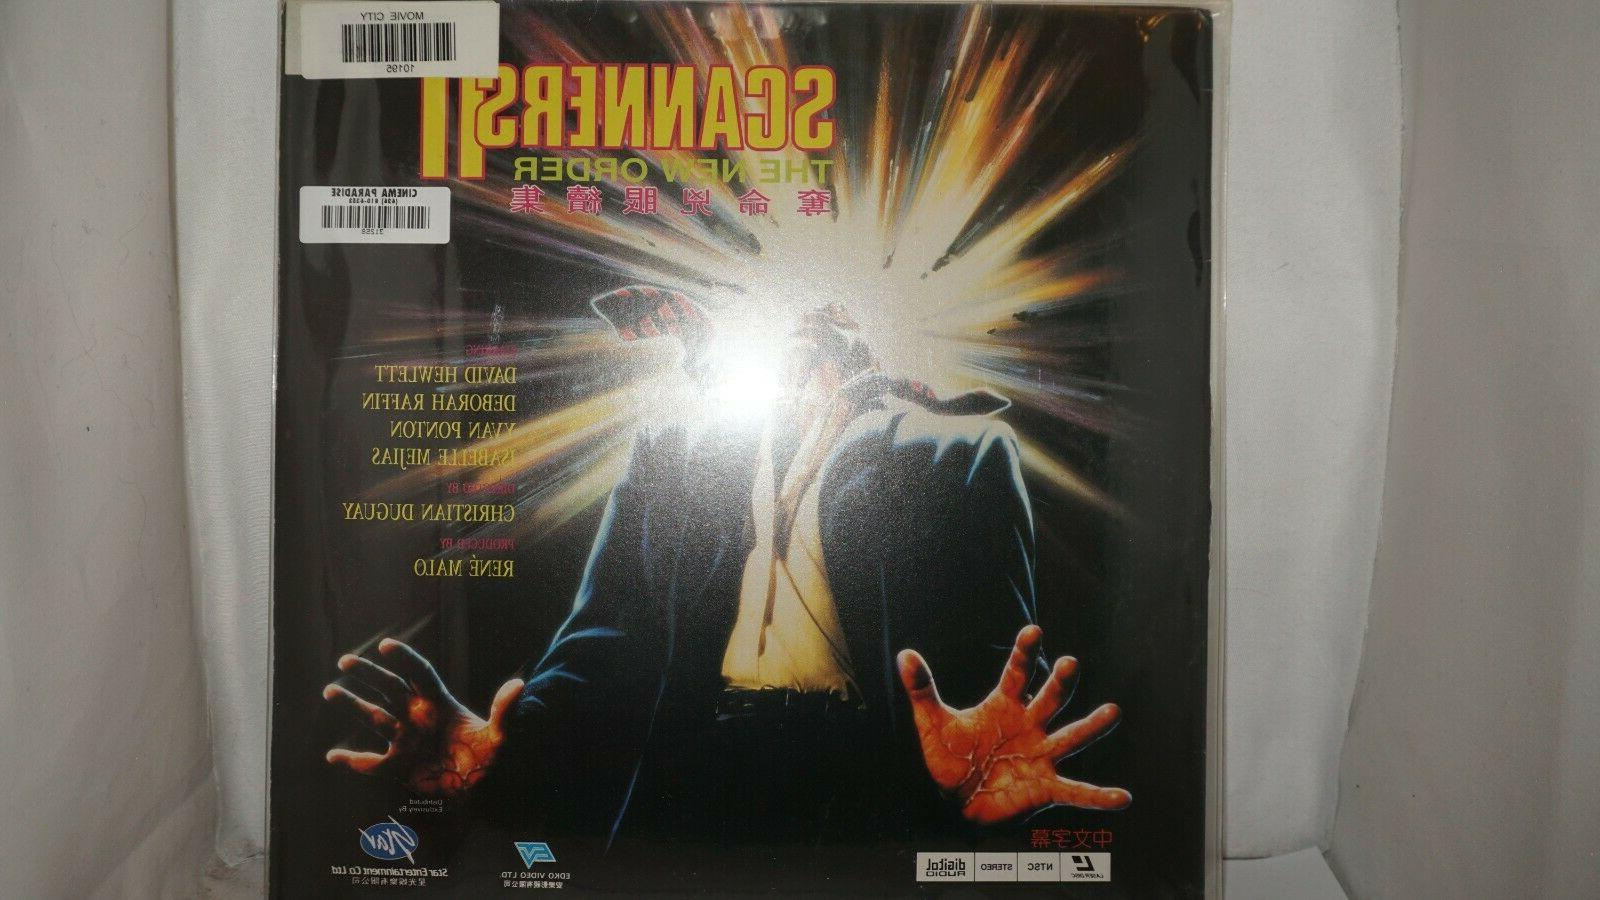 Scanner II The New Order Laserdisc Chinese Subtitile #3